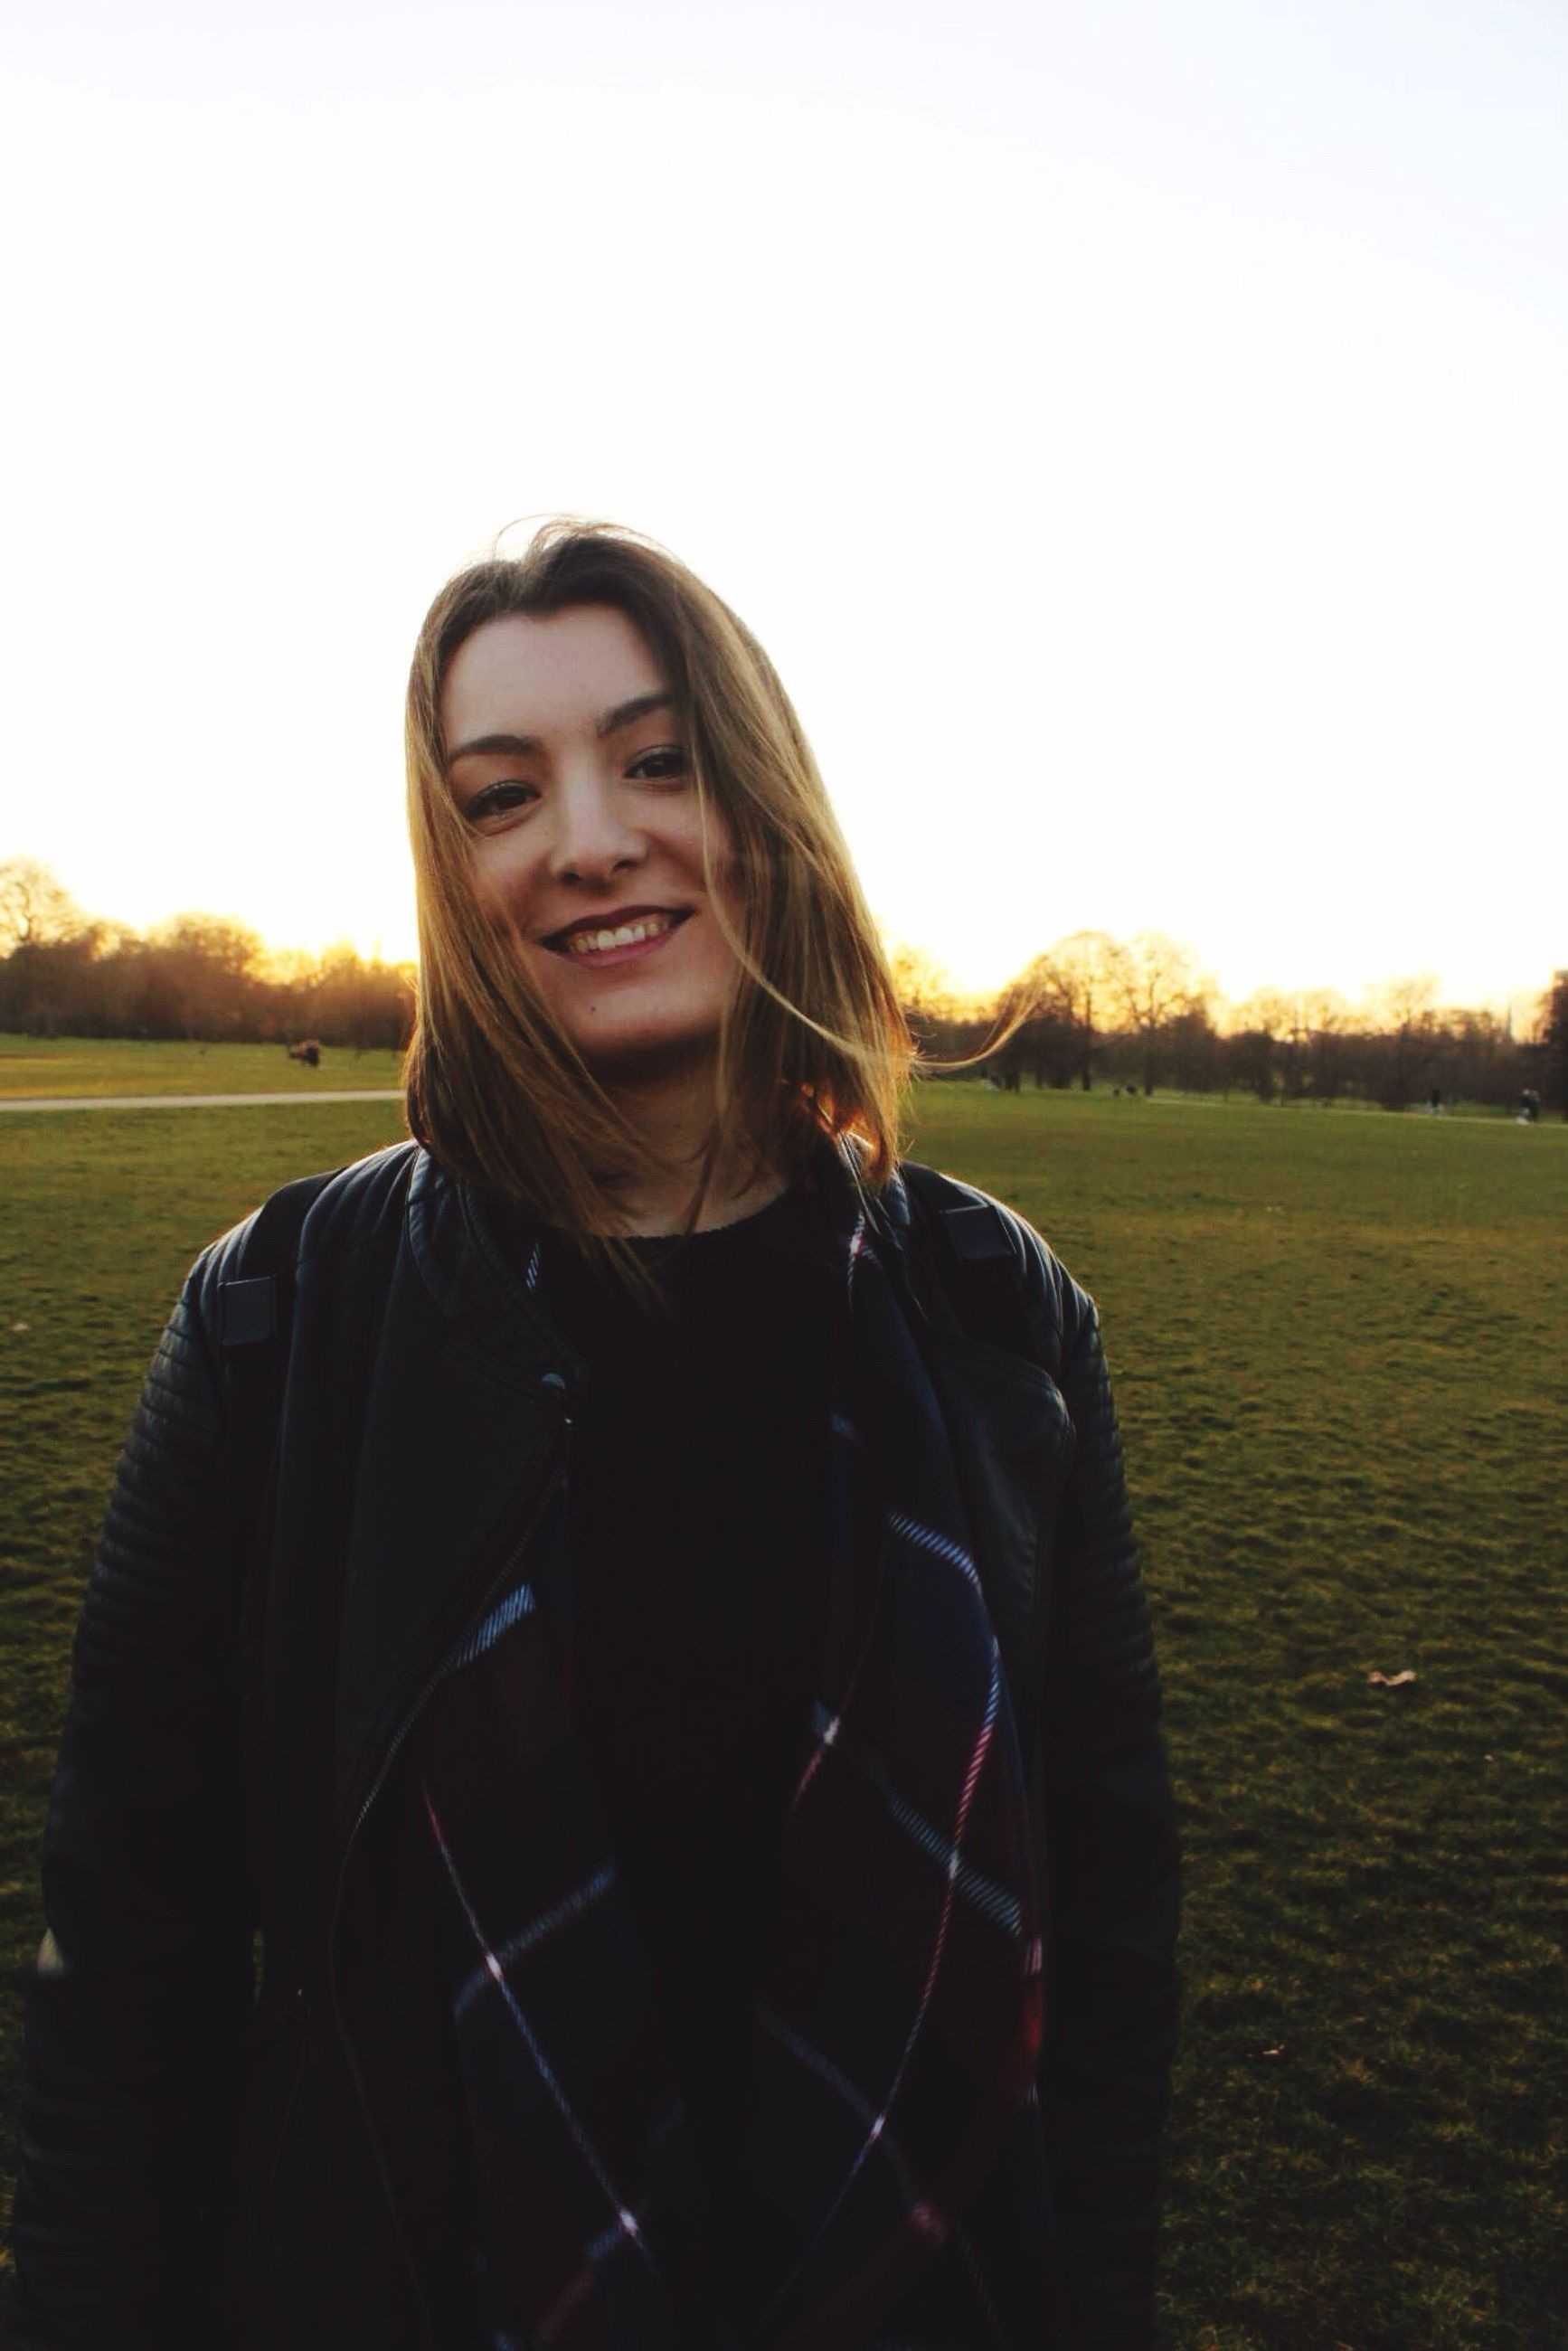 lifestyles, young adult, leisure activity, casual clothing, person, portrait, looking at camera, clear sky, front view, standing, waist up, young women, smiling, sunset, three quarter length, copy space, field, long hair